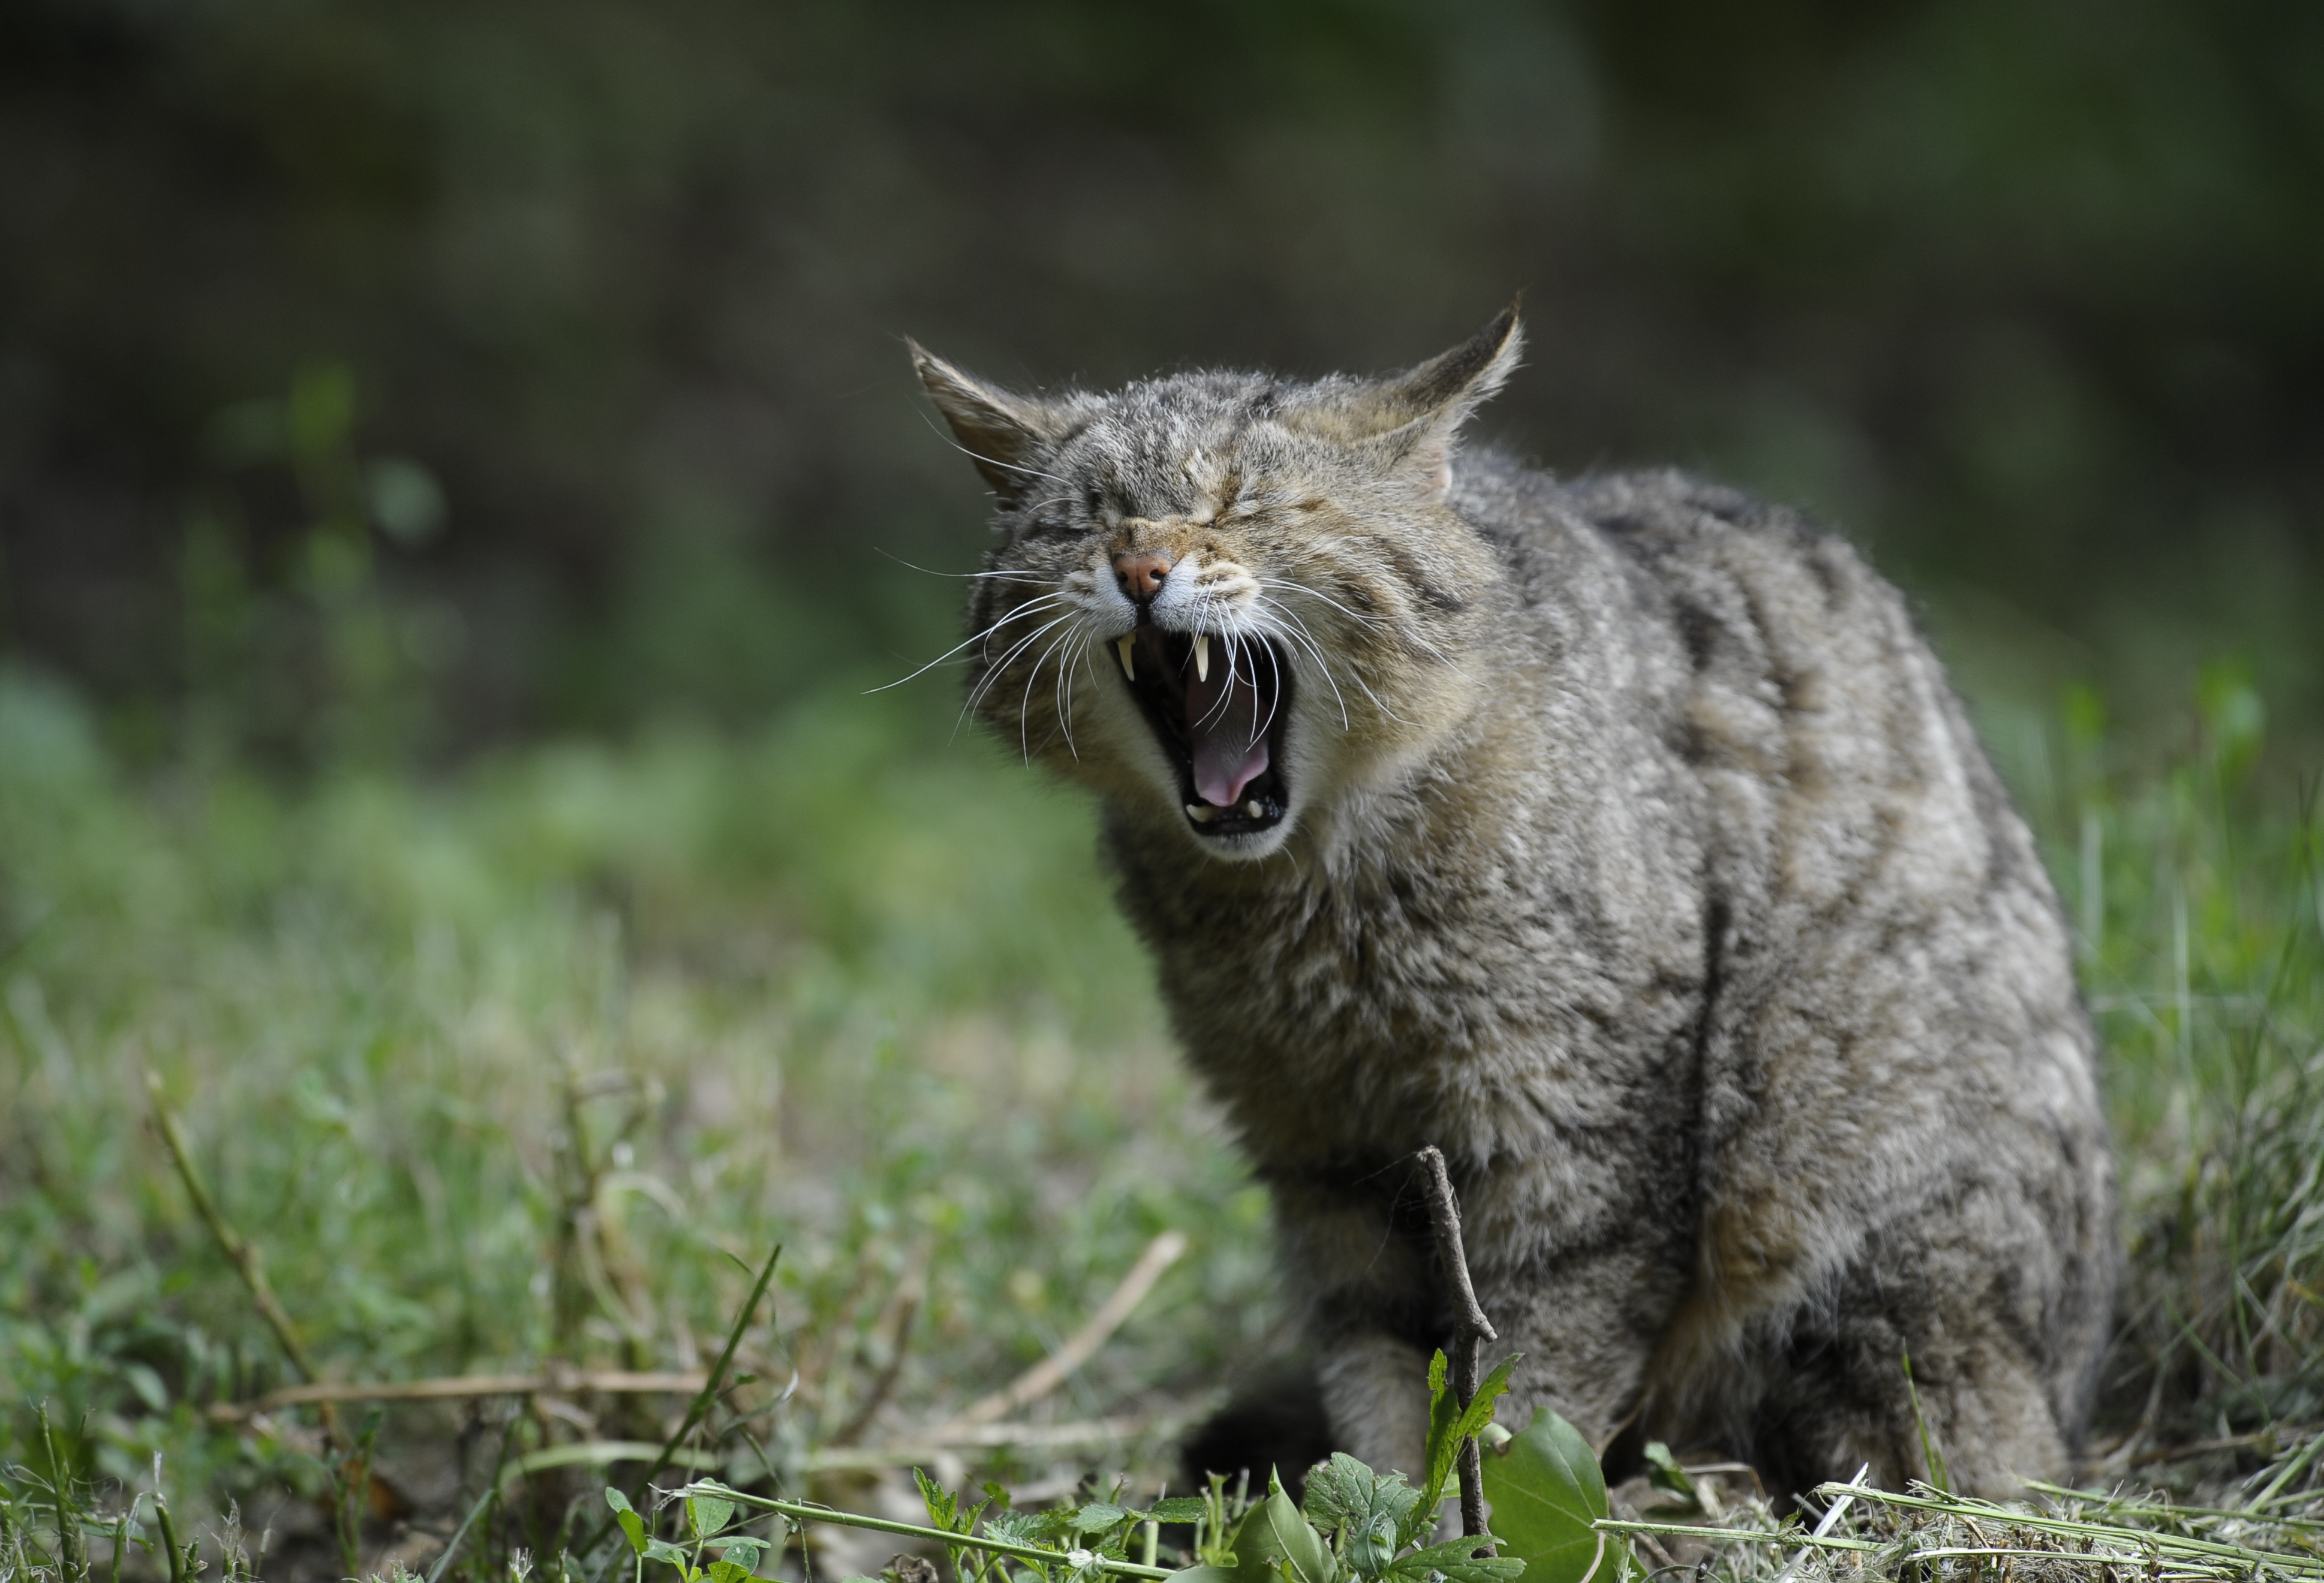 108028 download wallpaper Animals, Aggression, Wild Cat, Scream, Cry screensavers and pictures for free